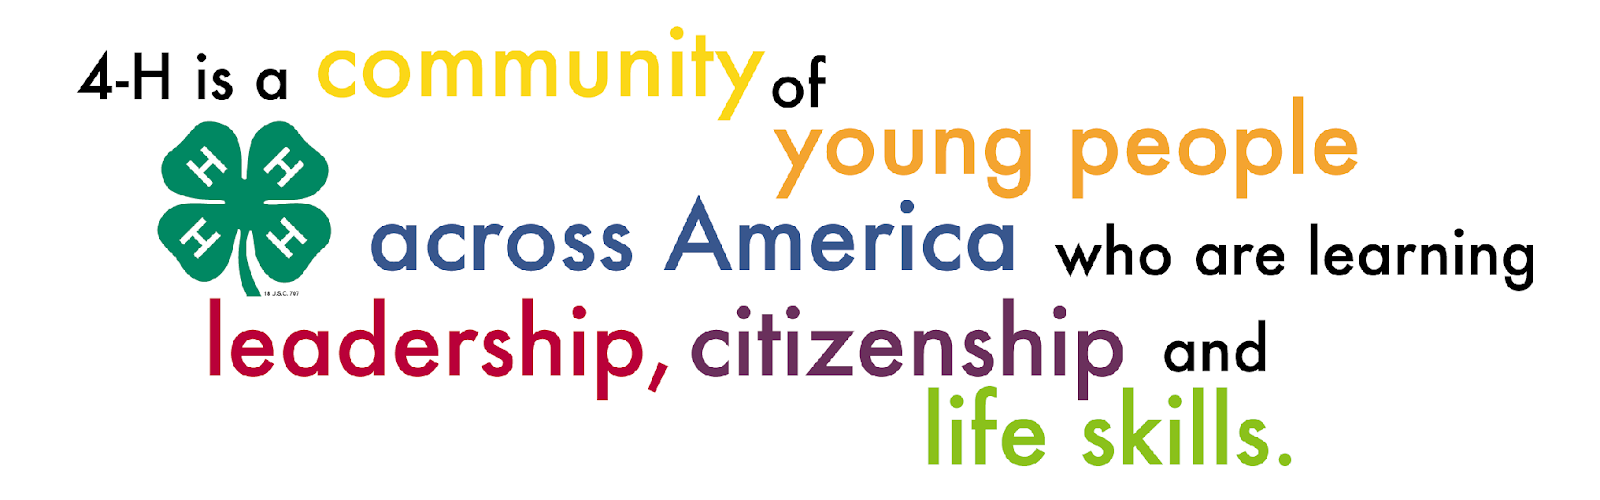 4-H is a community of young people across America who are learning leadership, citizenship and life skills